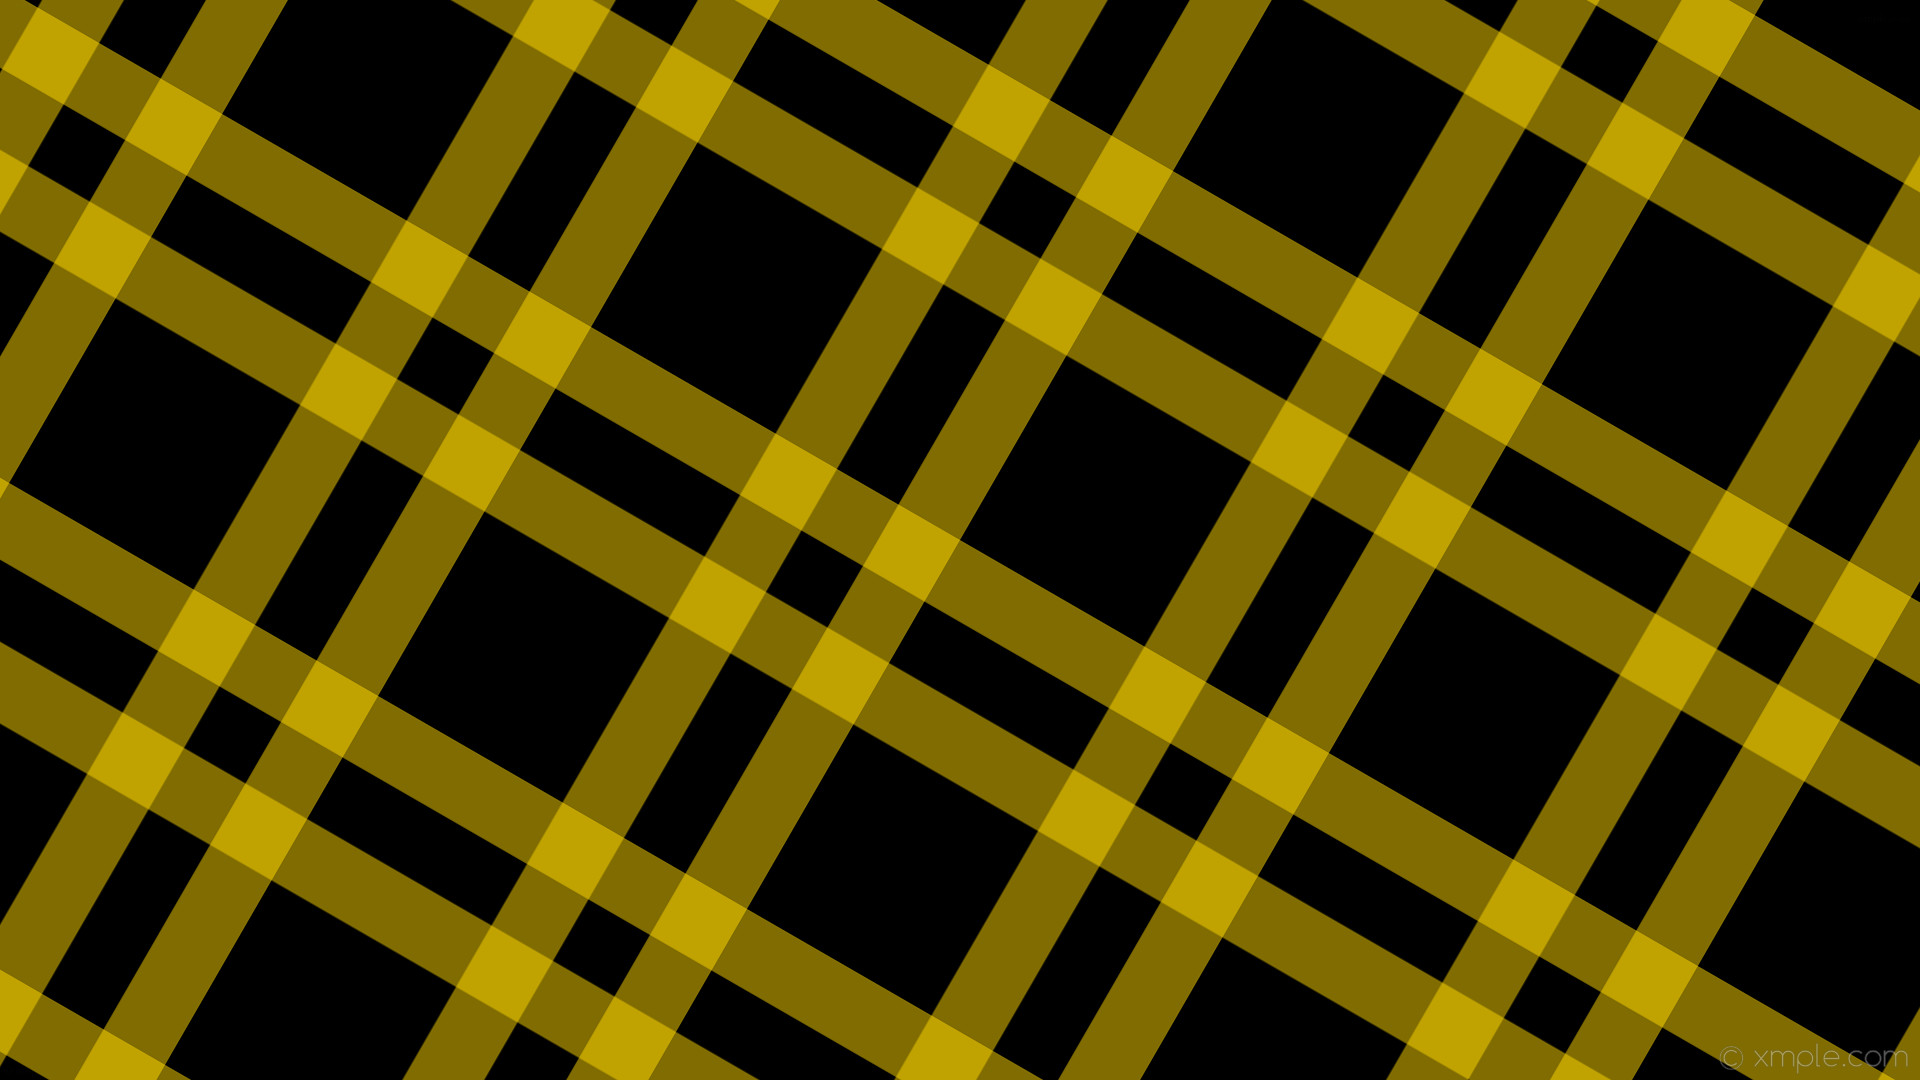 1920x1080 wallpaper dual black striped yellow gingham gold #000000 #ffd700 240° 71px